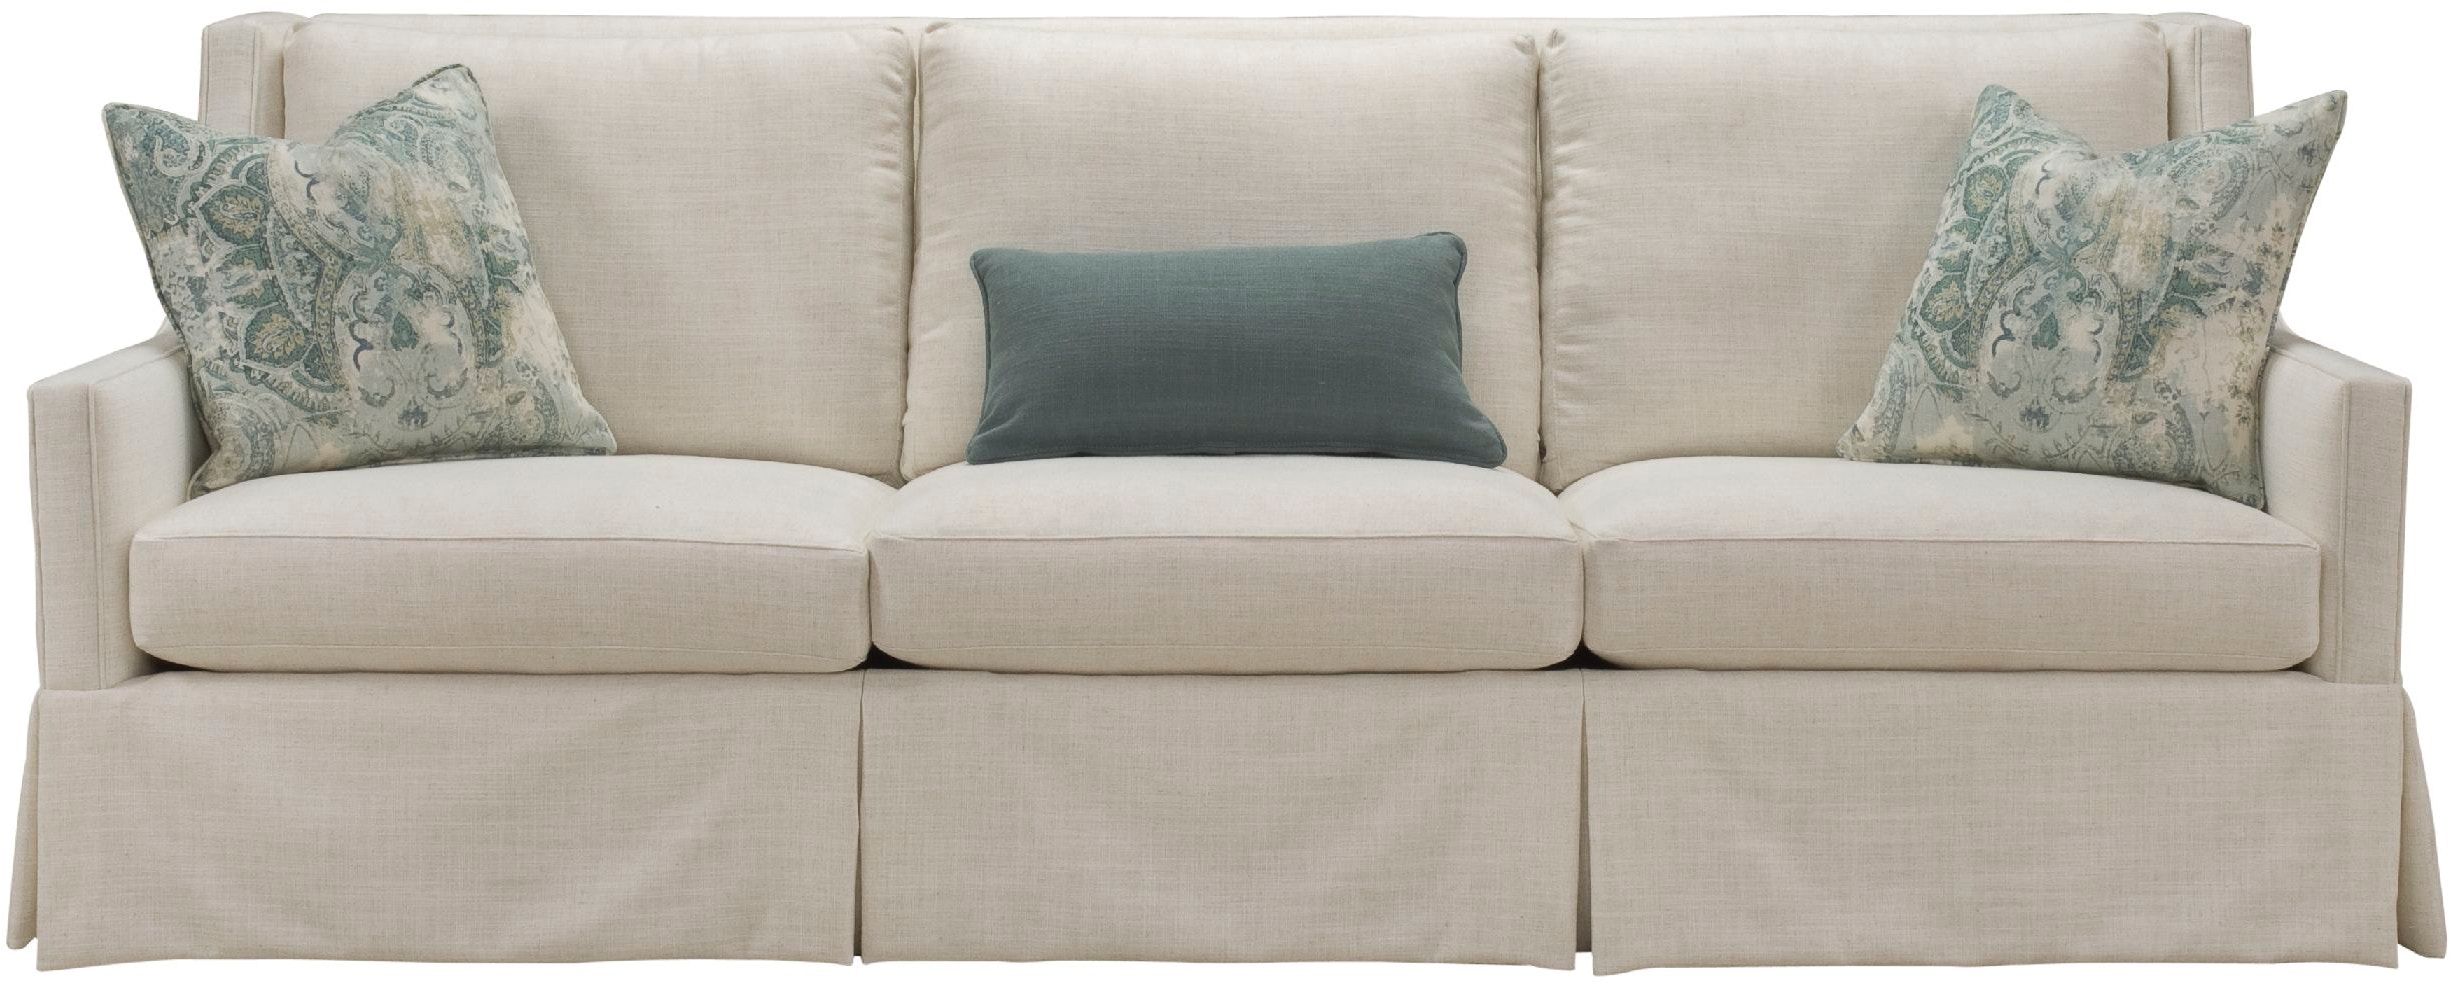 Southern Furniture Living Room Hudson Sofa Whitley